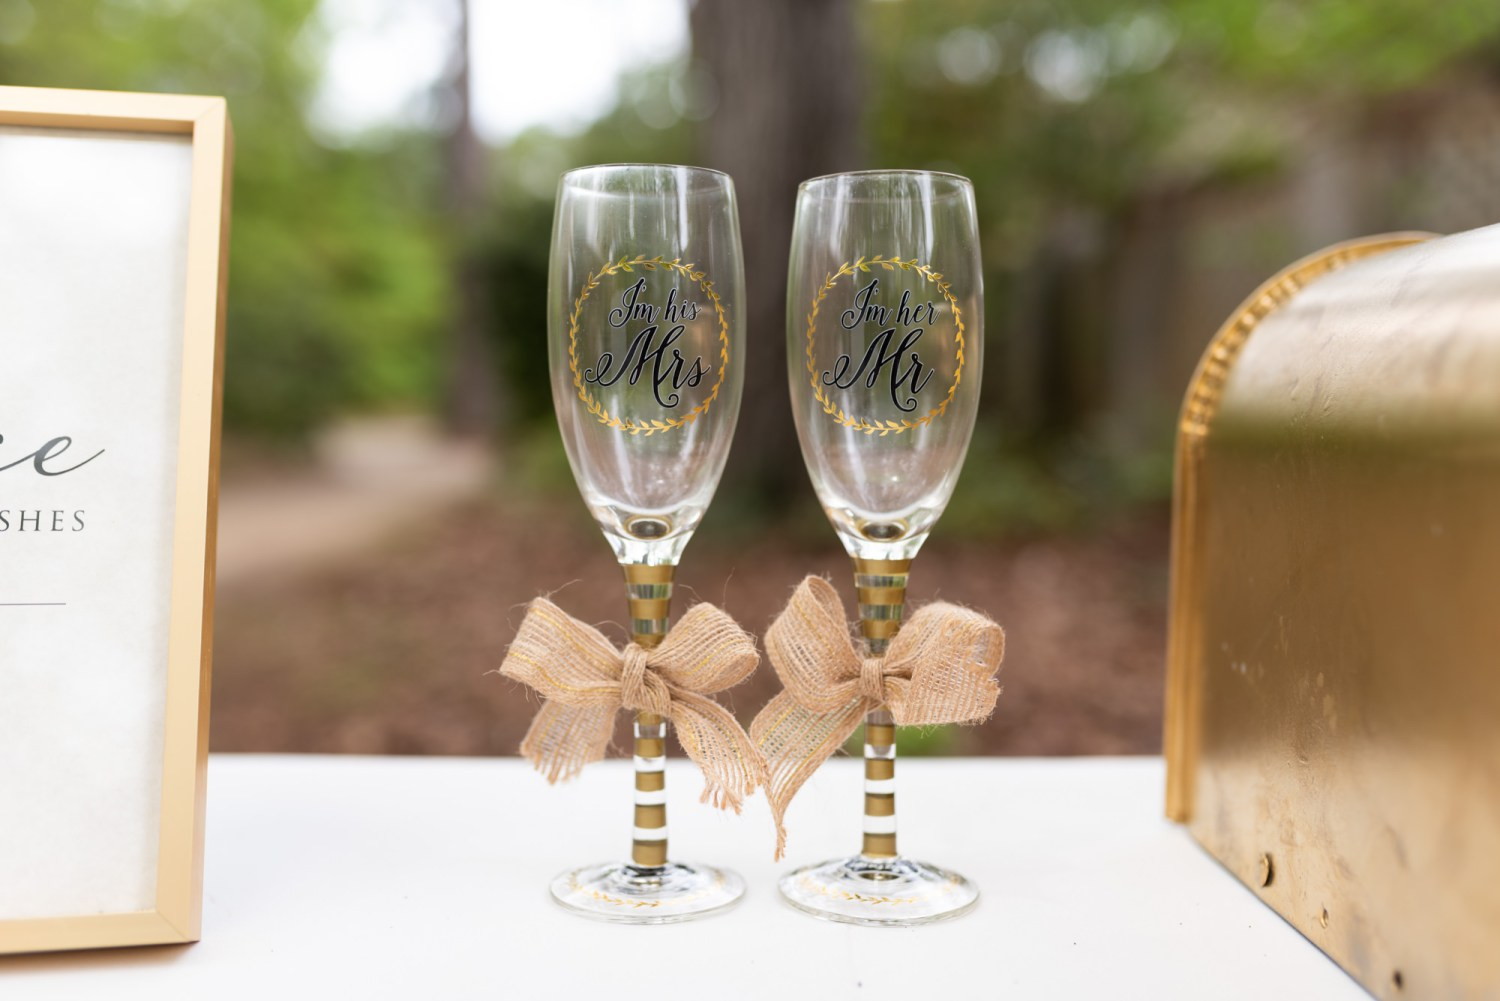 Mr and Mrs wine glasses - Brookgreen Gardens